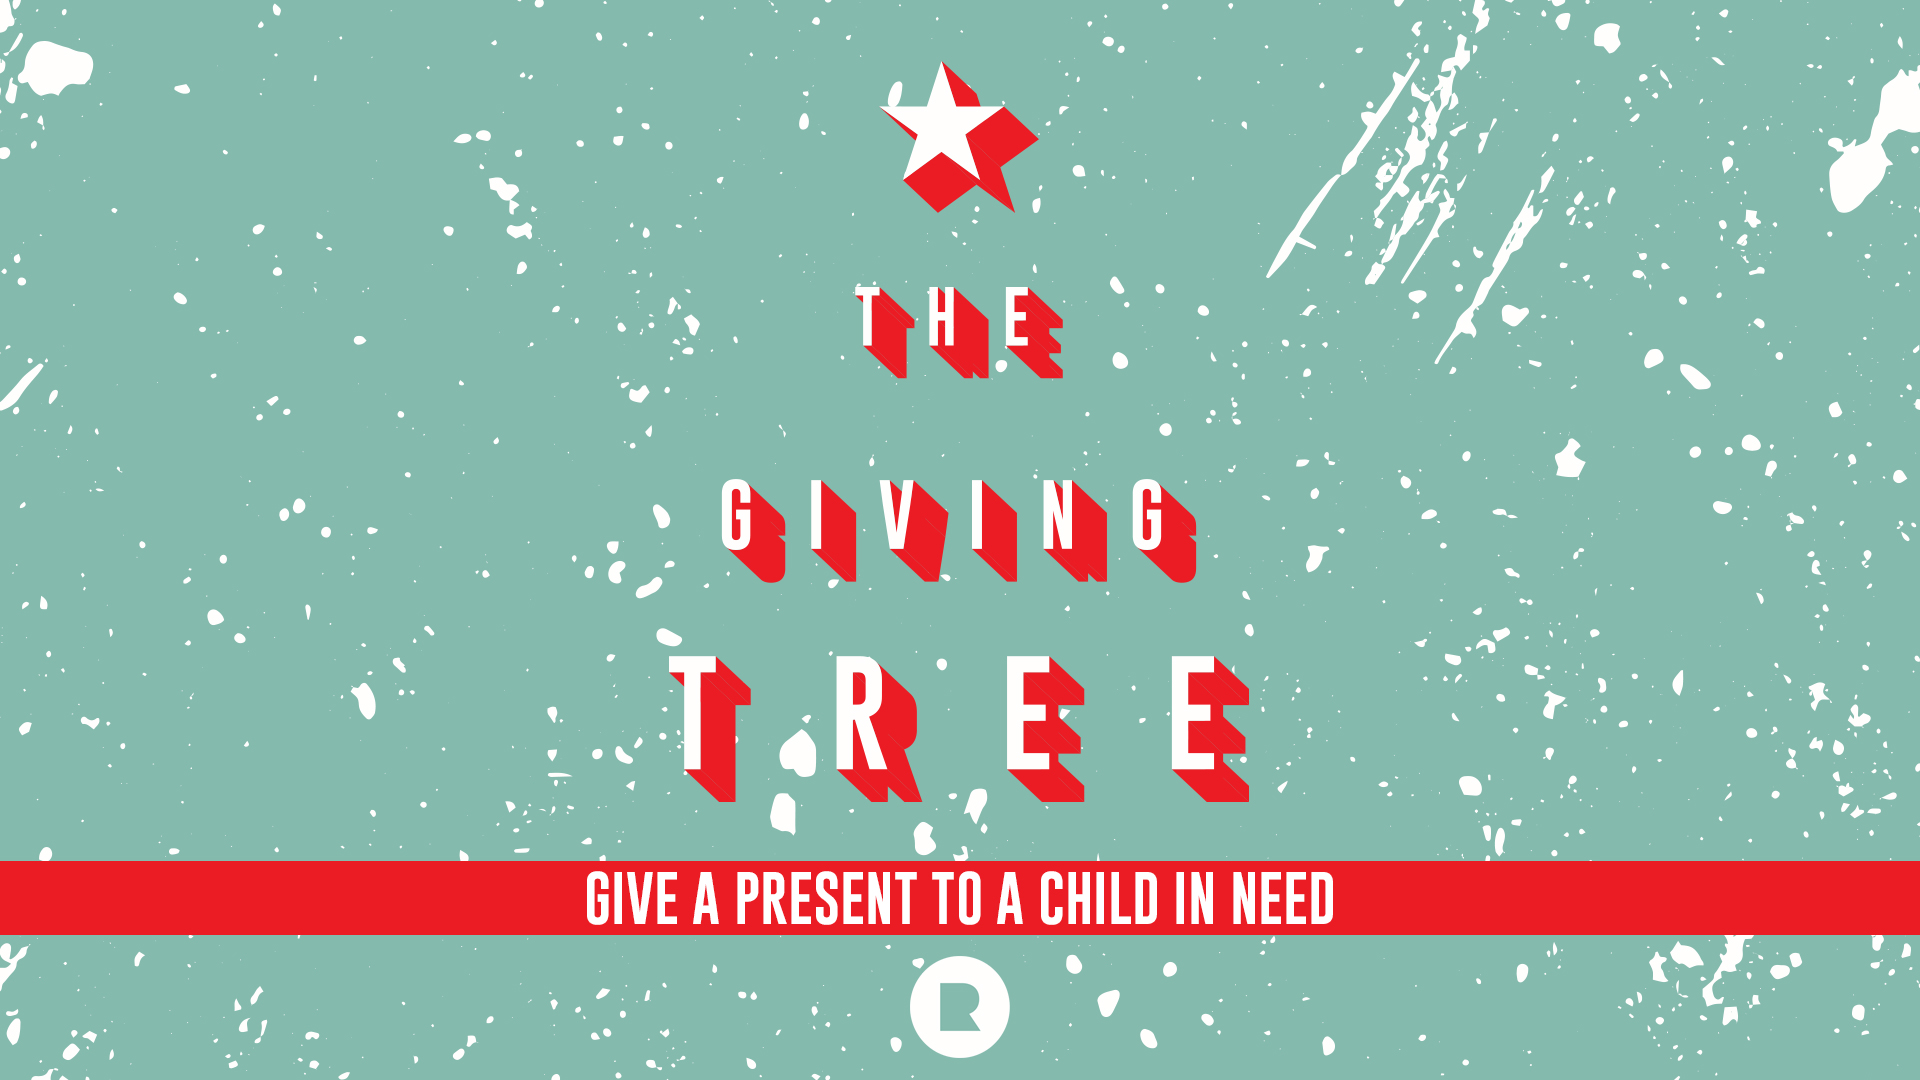 Reliance_GivingTree_Slide